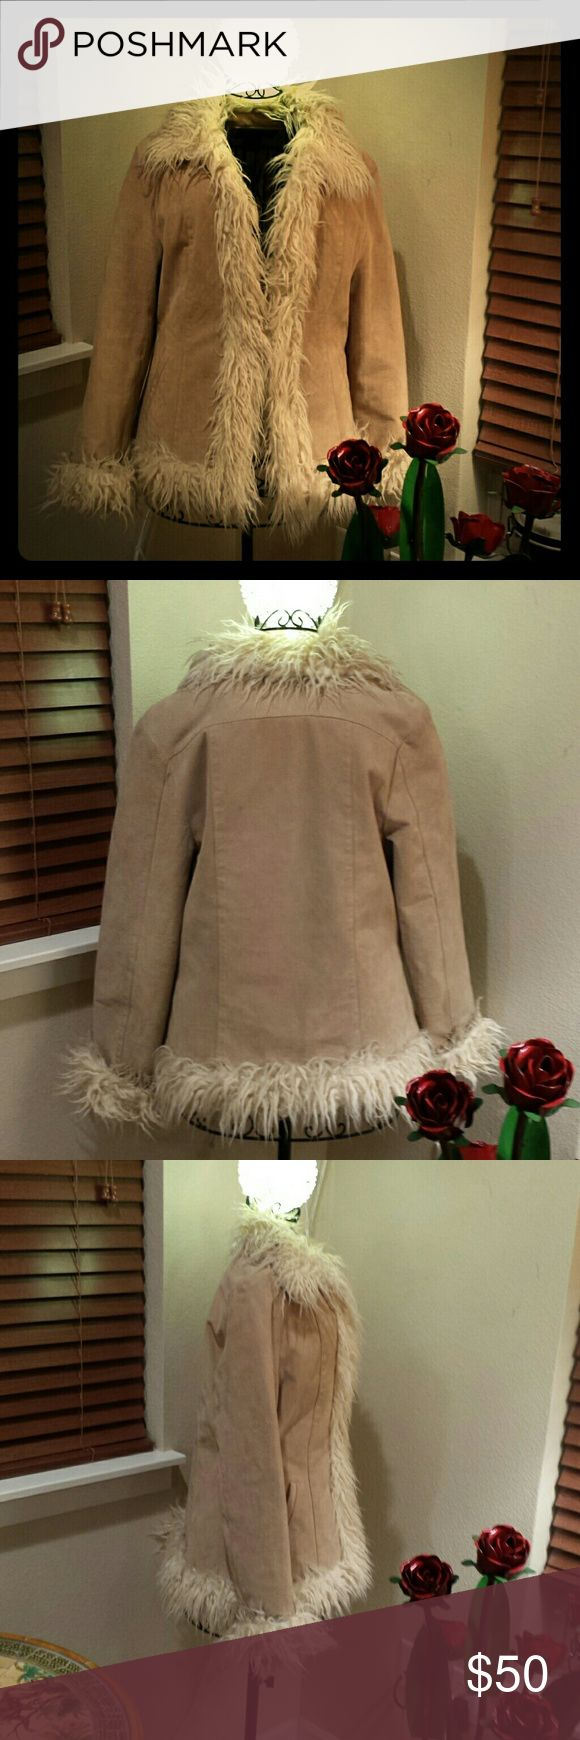 Vintage Leather Jacket Groovy tan leather jacket with faux fur trim . Fully lined, warm and cozy. Dunne & Cole Jackets & Coats